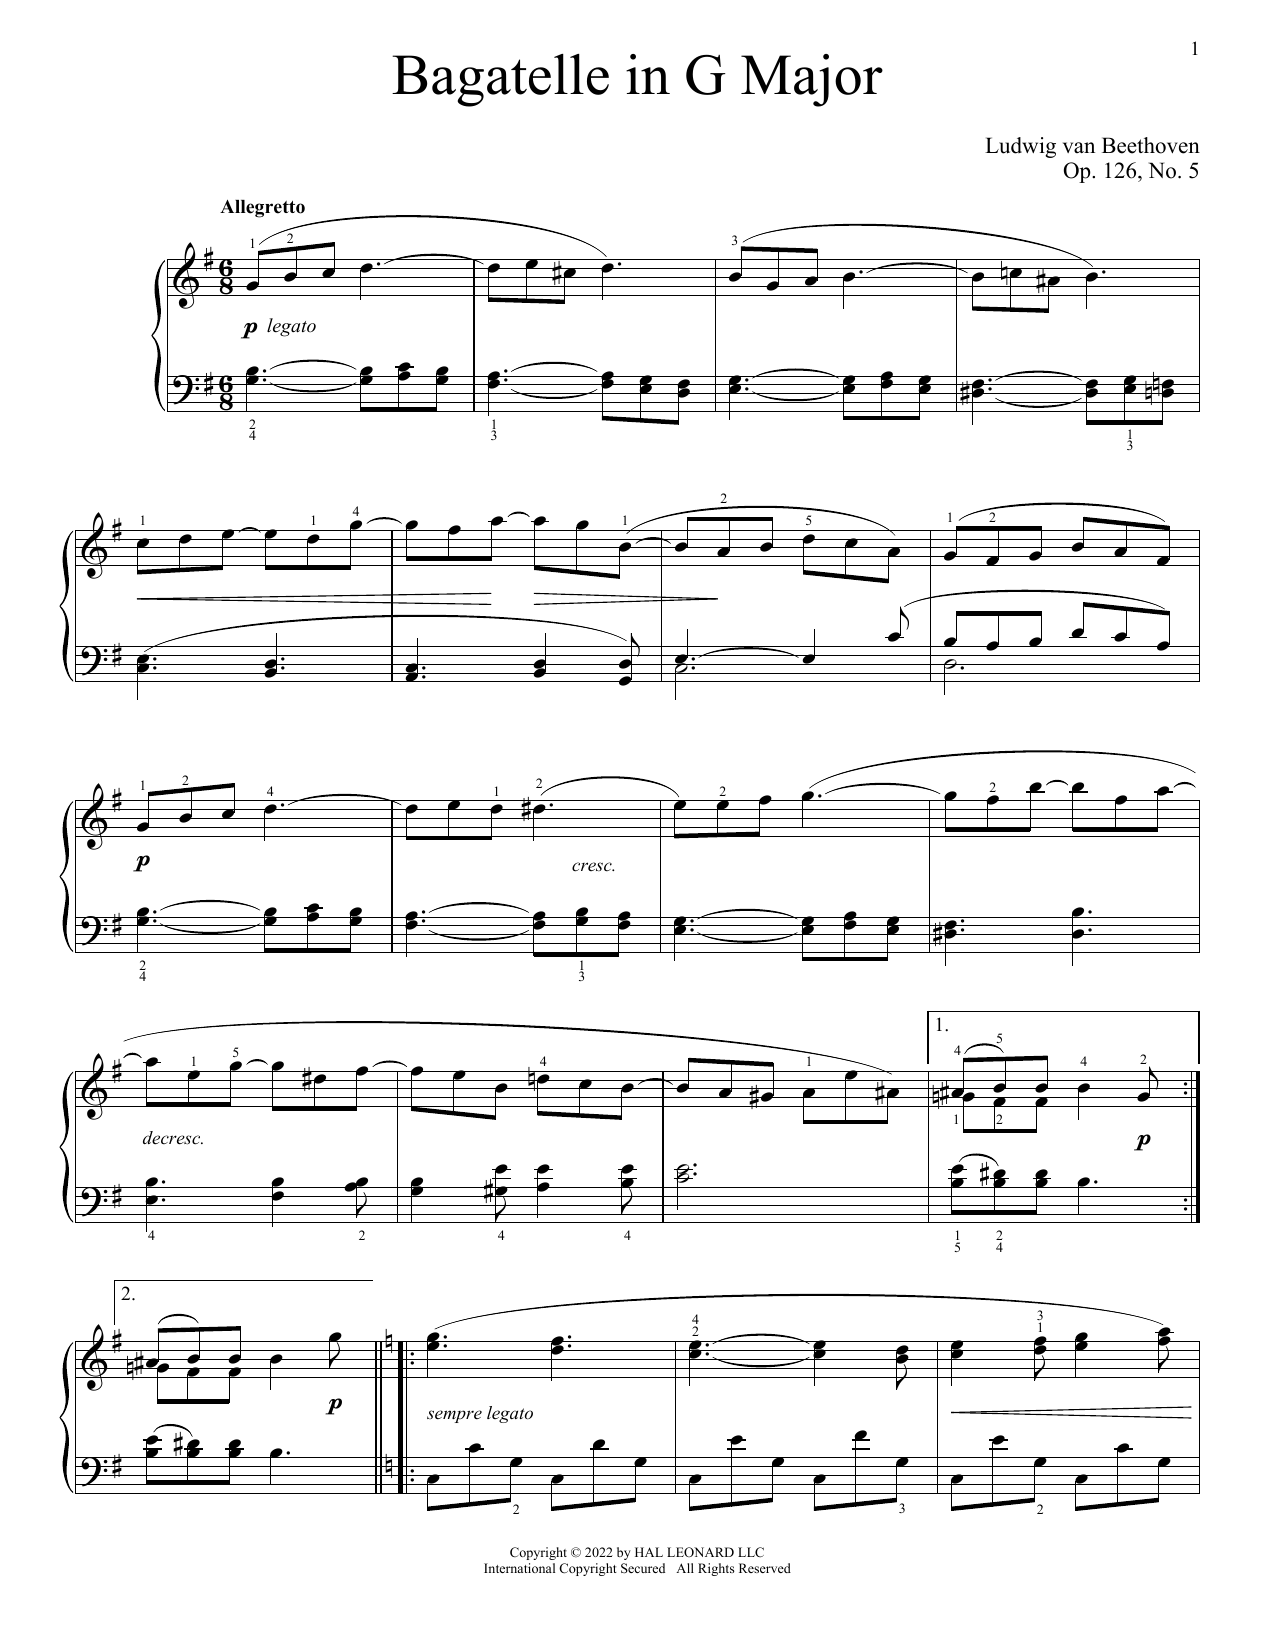 Bagatelle in G, Op. 126, No. 5 Sheet Music